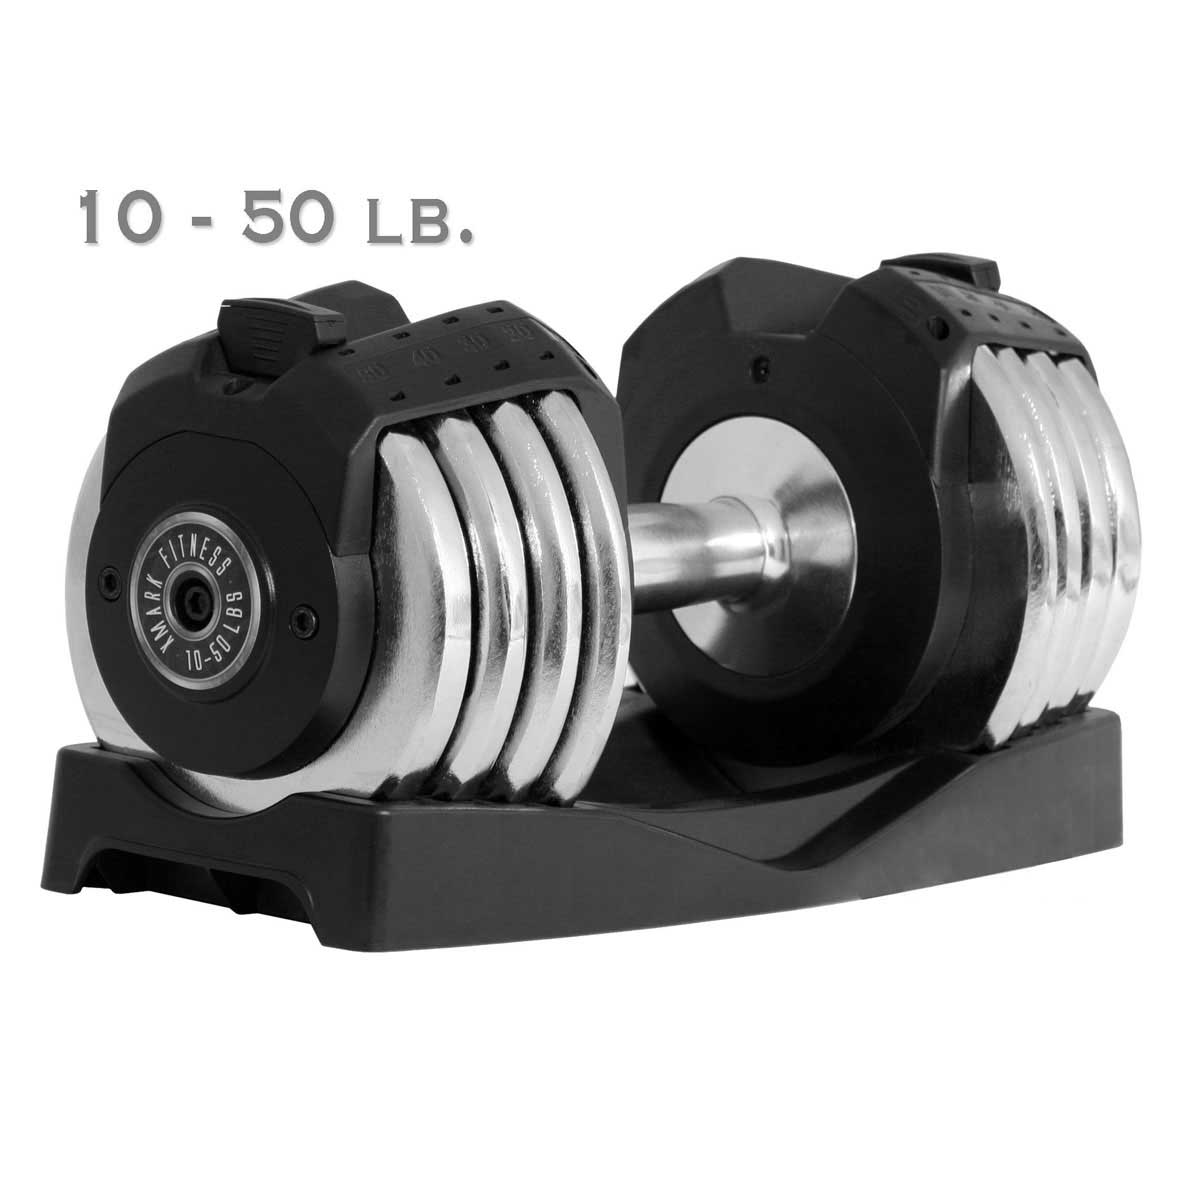 Exceptionnel XMark 50 Lb. Adjustable Dumbbell Pair